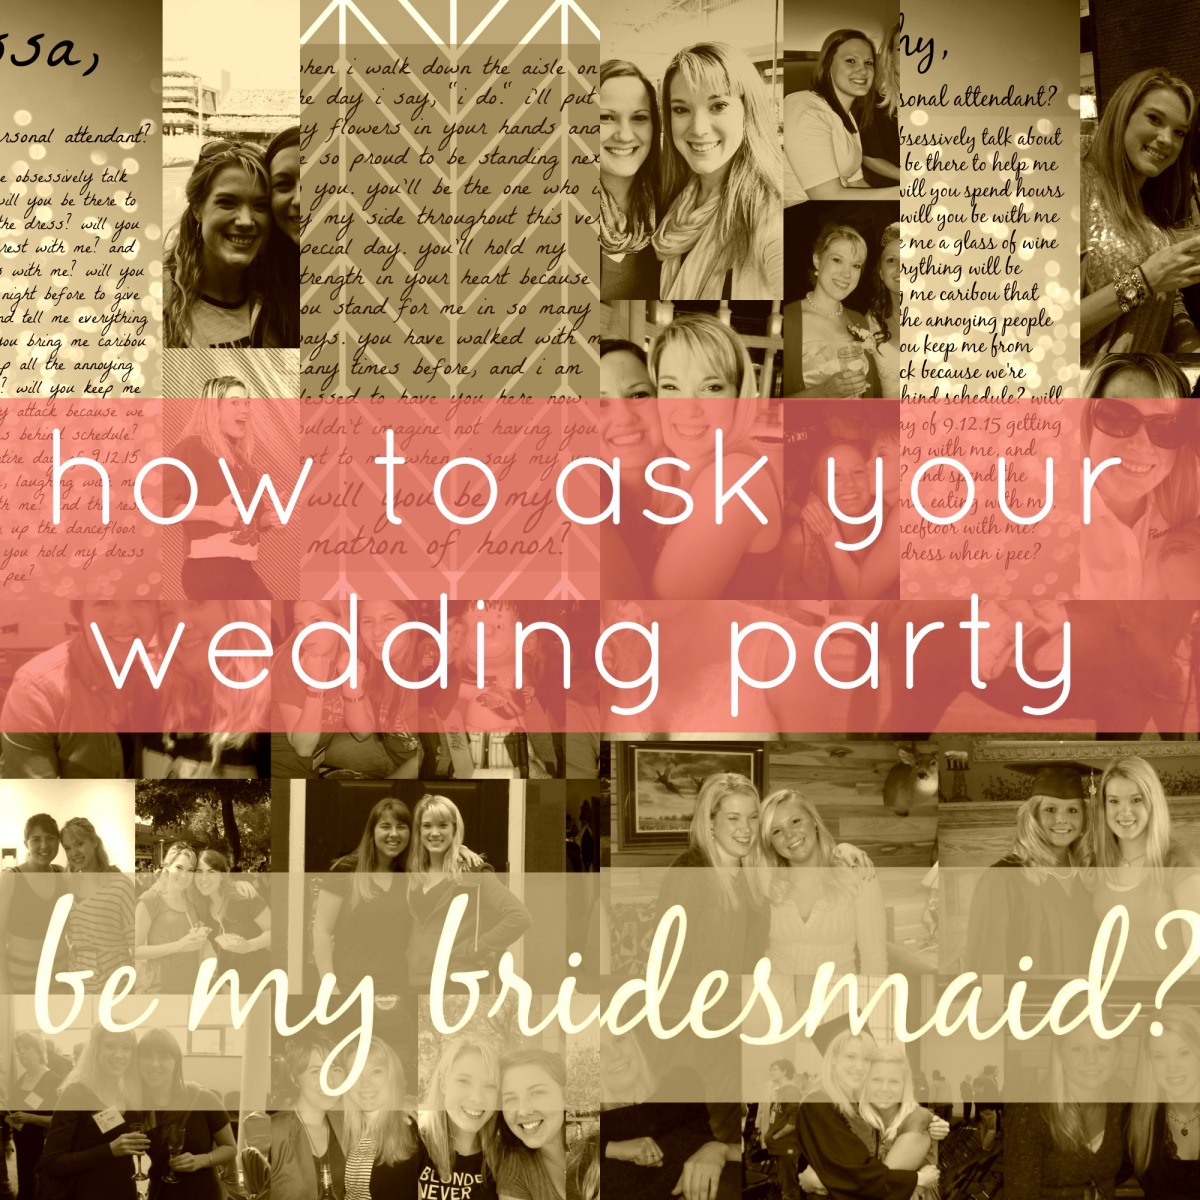 The Story Of Our Wedding // How To Ask Your Wedding Party